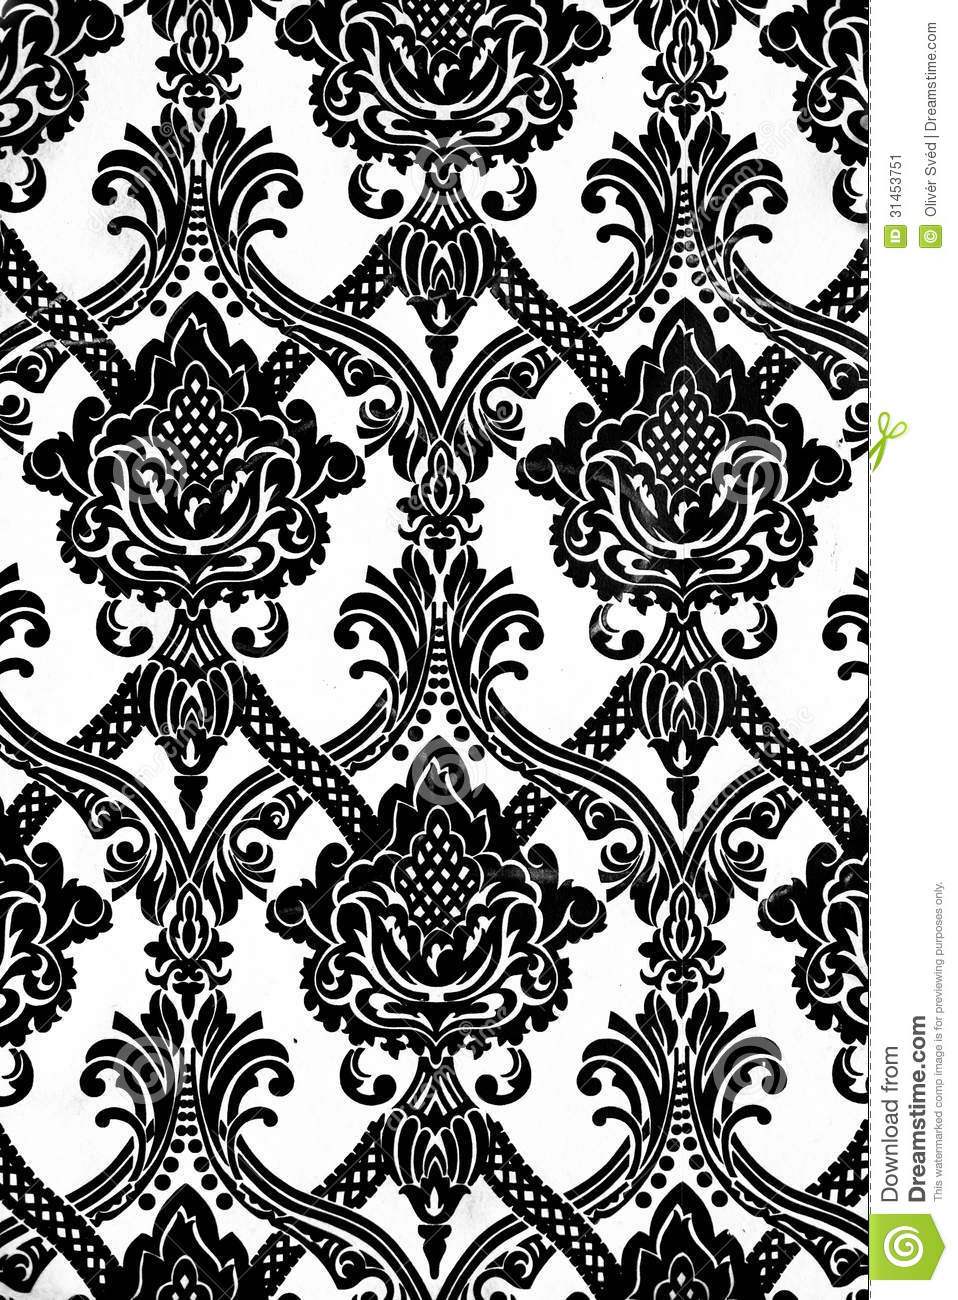 Vintage wallpaper pattern background in black and white